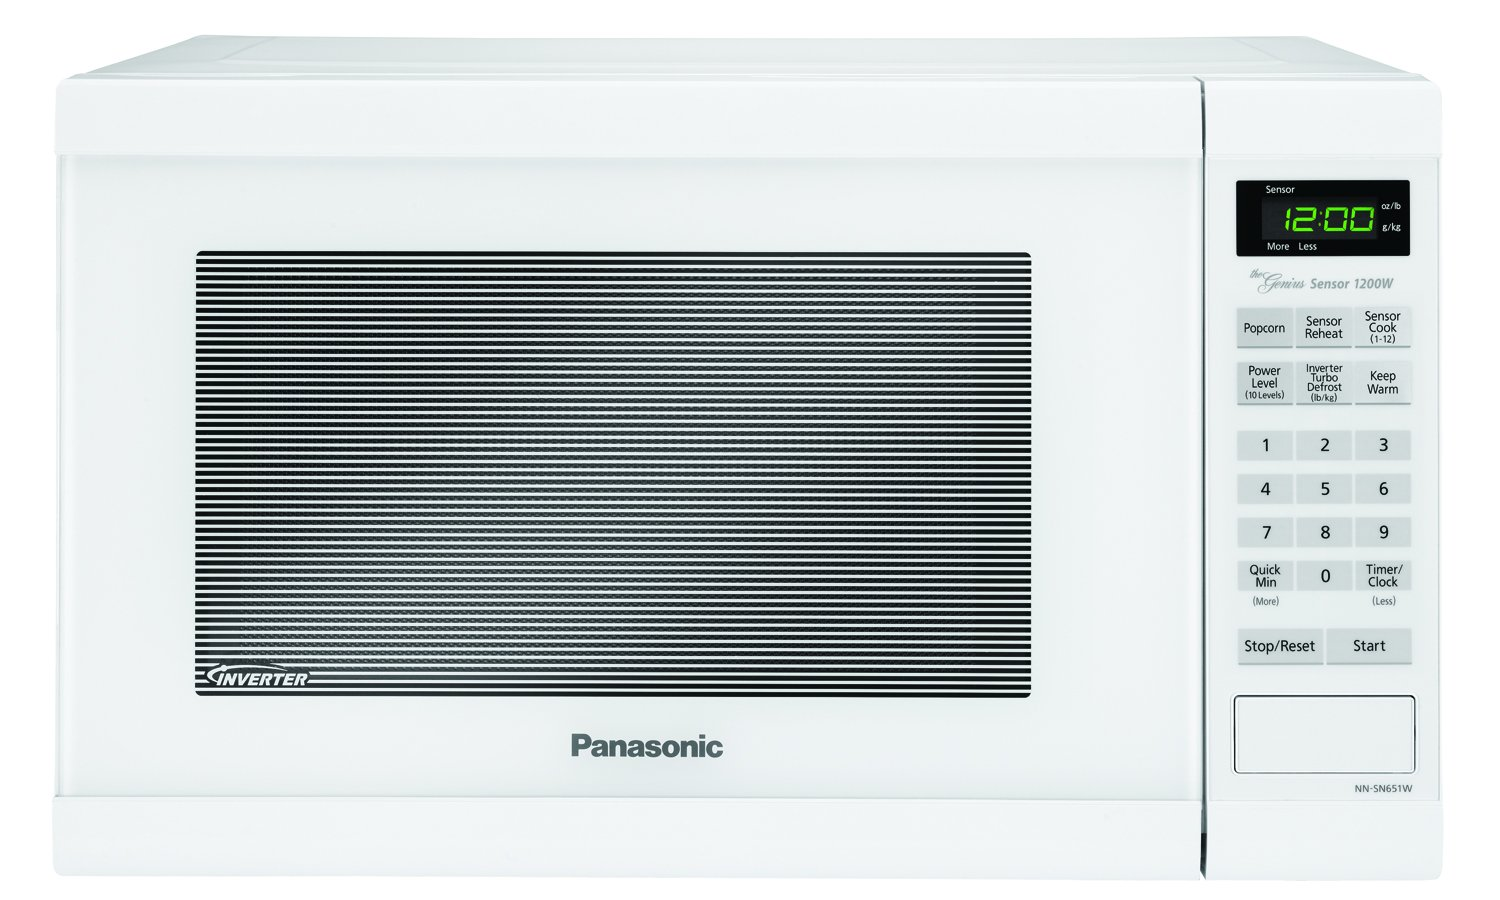 Panasonic NN-SN651B Countertop Microwave with Inverter Technology, 1.2 cu. ft, Black